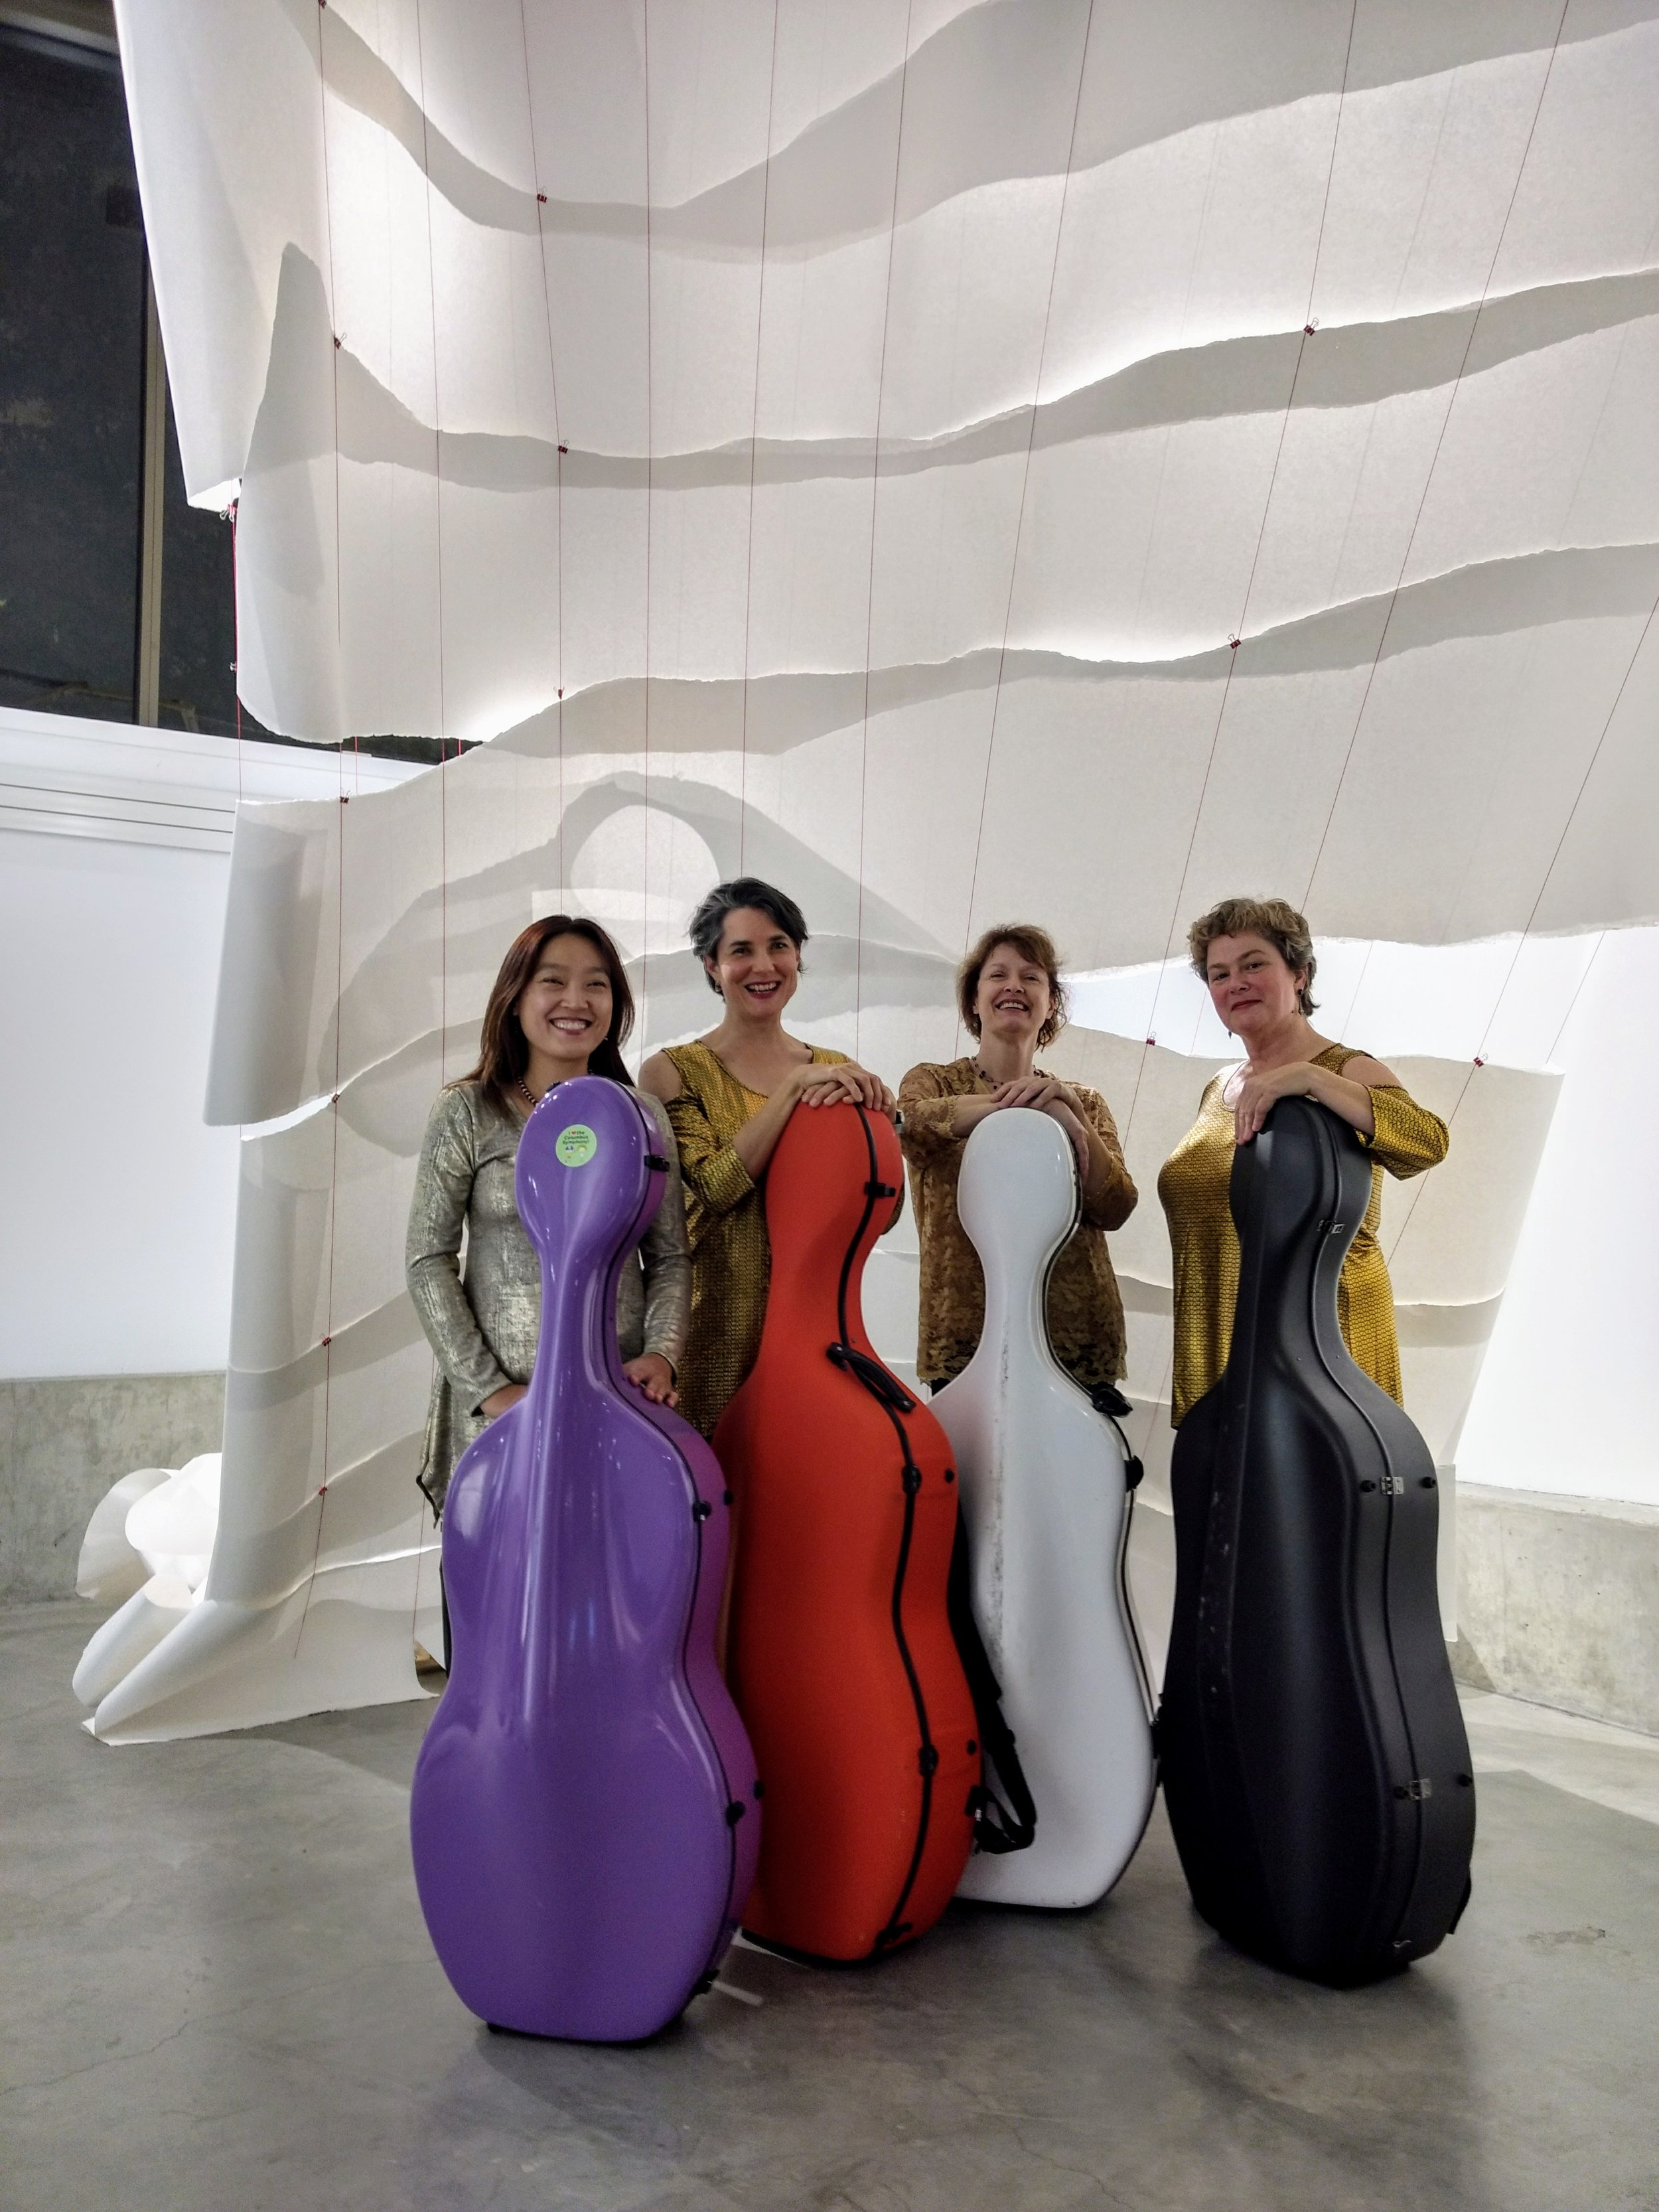 UCELLI - A quartet of virtuoso cellists performing unique and exciting music of the past and present!